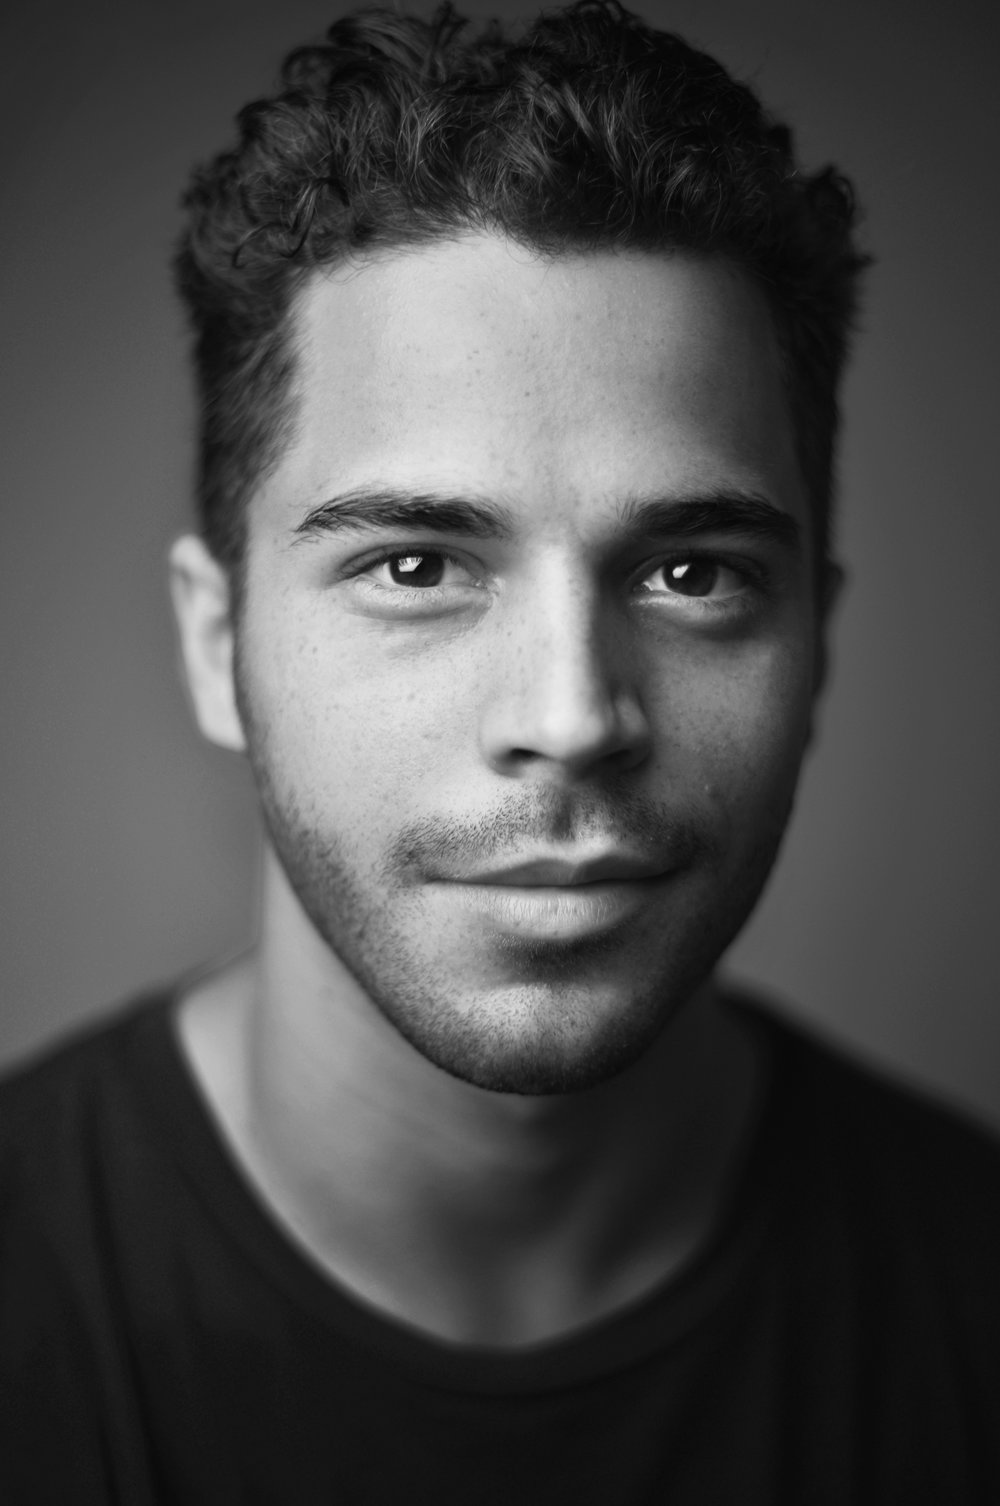 Will Thompson  was born in 1994 in South-East London. After being introduced to dance during his first few years at secondary school, his training began on the Trinity Laban CAT scheme while also being part of Shoreditch Youth Dance. After two years Thompson went on to Rambert School, receiving a BA HONS in 2016.  During his last year of training he was one of the selected artists to take part in DV8 Physical Theatres Professional Development programme. Since, his work within theatre and dance has expanded across both stage and film. Thompson has worked with and performed in creations by Hannes Langolf, INNE|Iván Pérez, Johannes Wieland, Maciej Kuźmiński and Maxine Doyle amongst other directors, choreographers and collaborators, which have been created and performed both internationally and within the UK.  Photo credit: www.jack-thomson.com